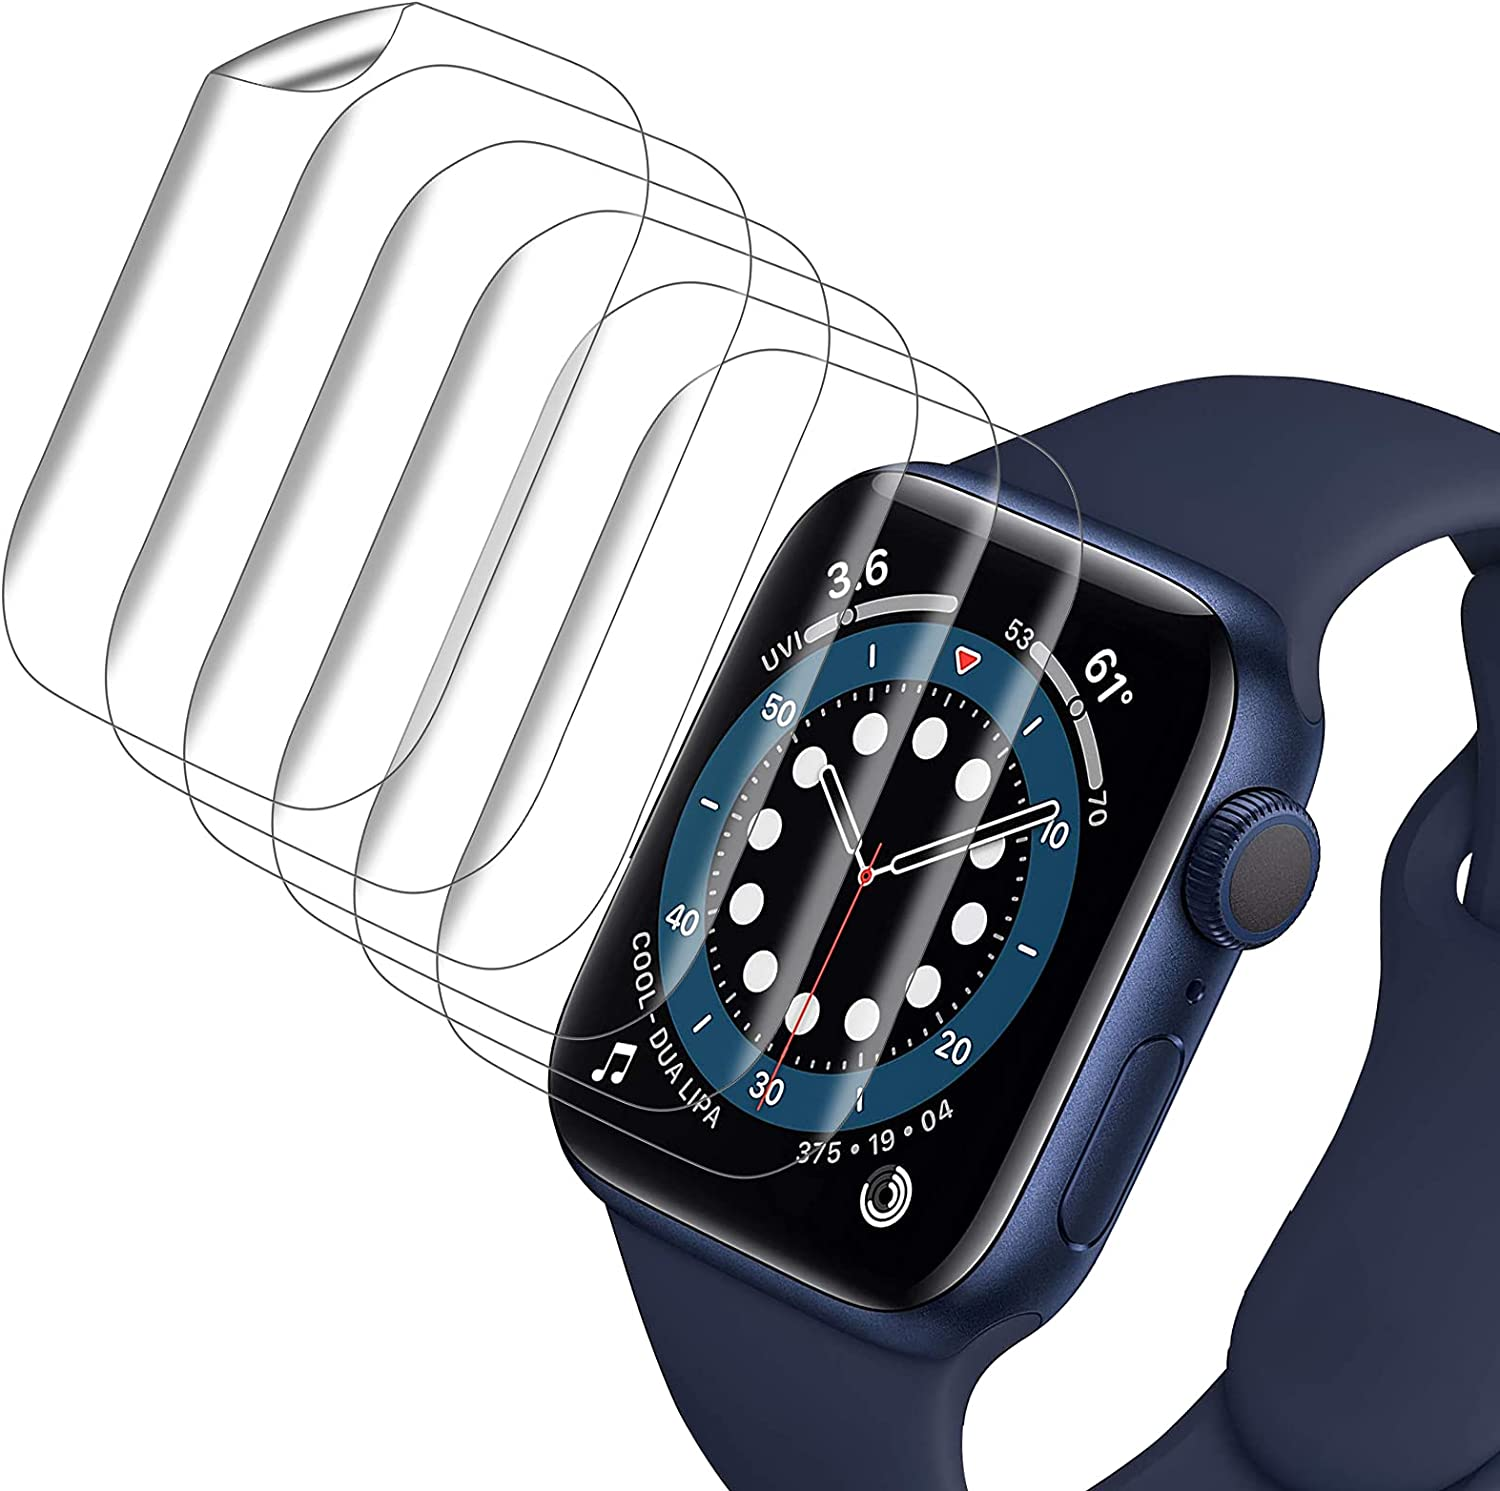 VASG [8-Pack] Screen Protector compatible with Apple Watch Series 6 / SE/Series 5 / Series 4 44mm, Full Cover Flexible Clear Film Compatible with iWatch 44mm [Scratch Resist] [Ultra-Thin]